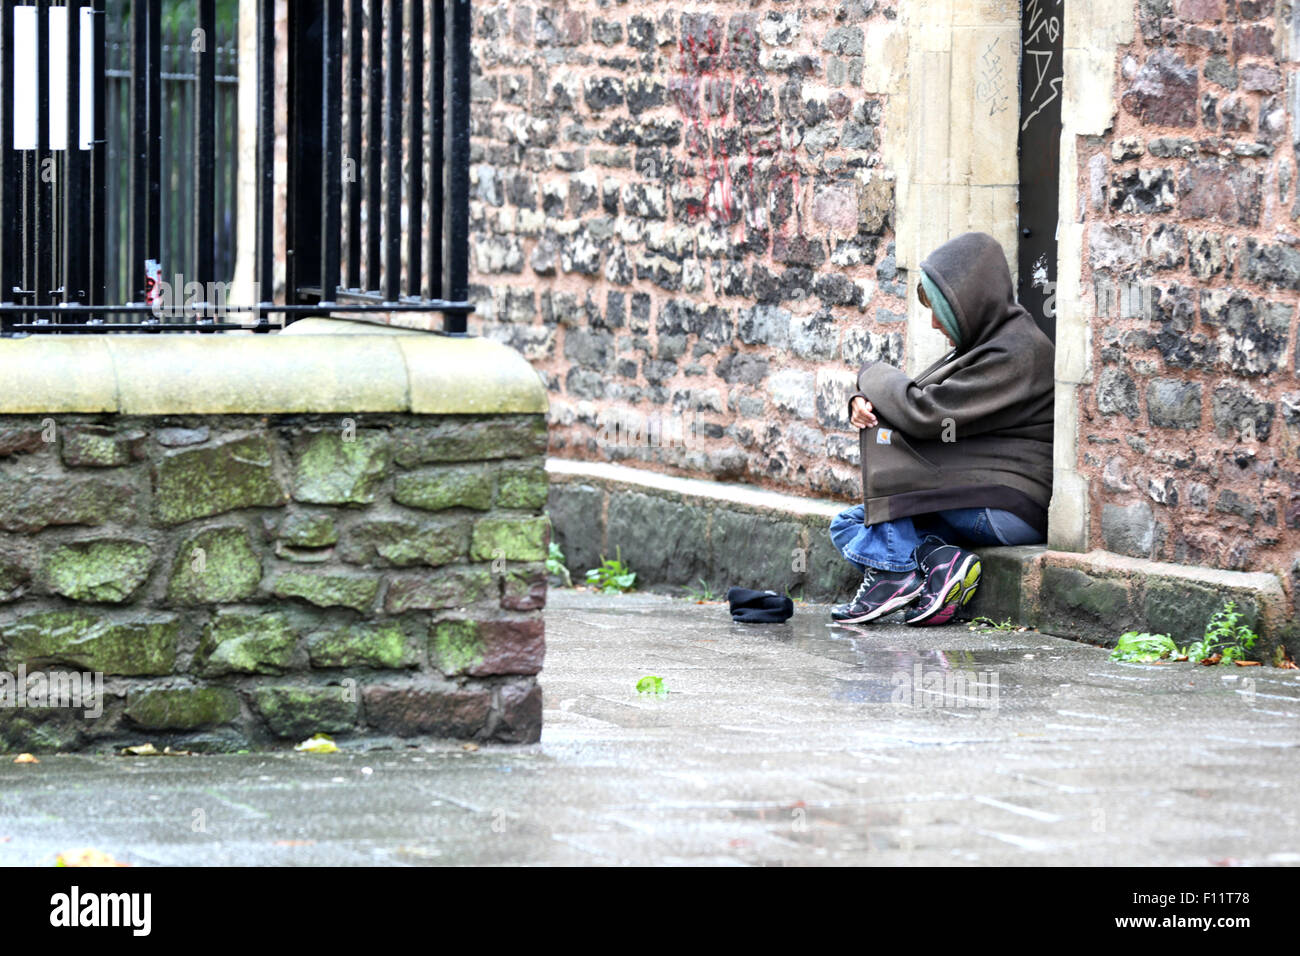 A female street beggar asking for money on a wet city street. Its a wet cold day and the female has wrapped herself - Stock Image